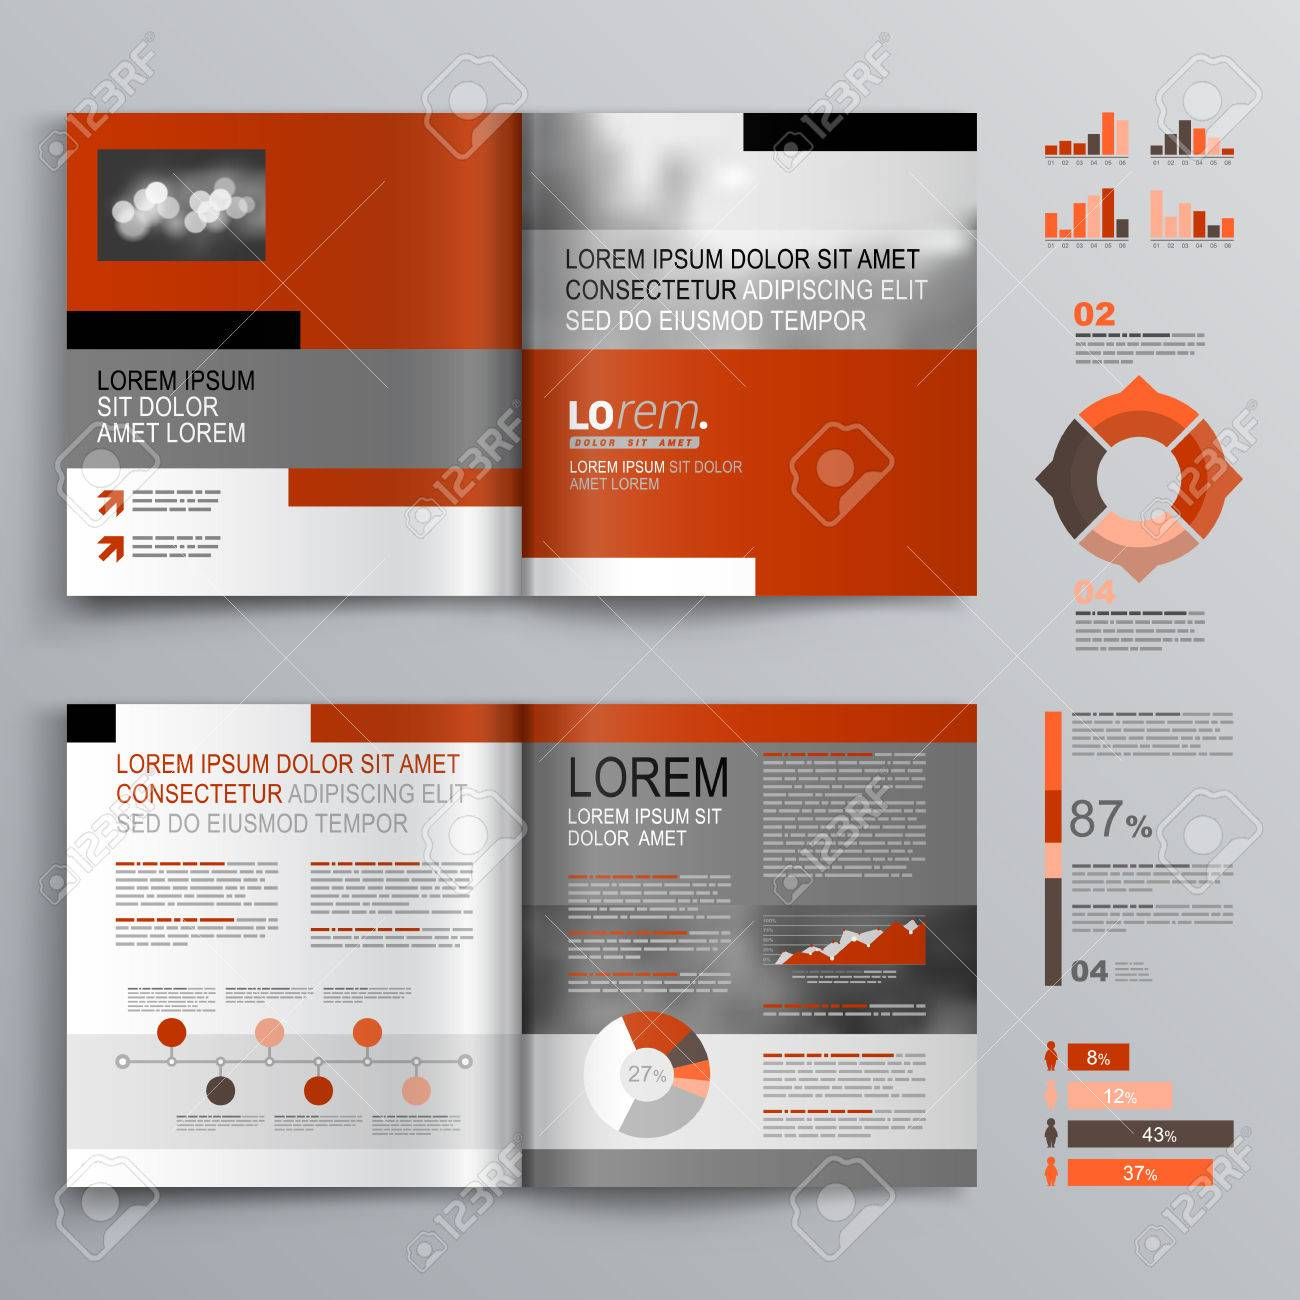 flyer template stock vector illustration and royalty flyer template classic brochure template design gray and red shapes cover layout and